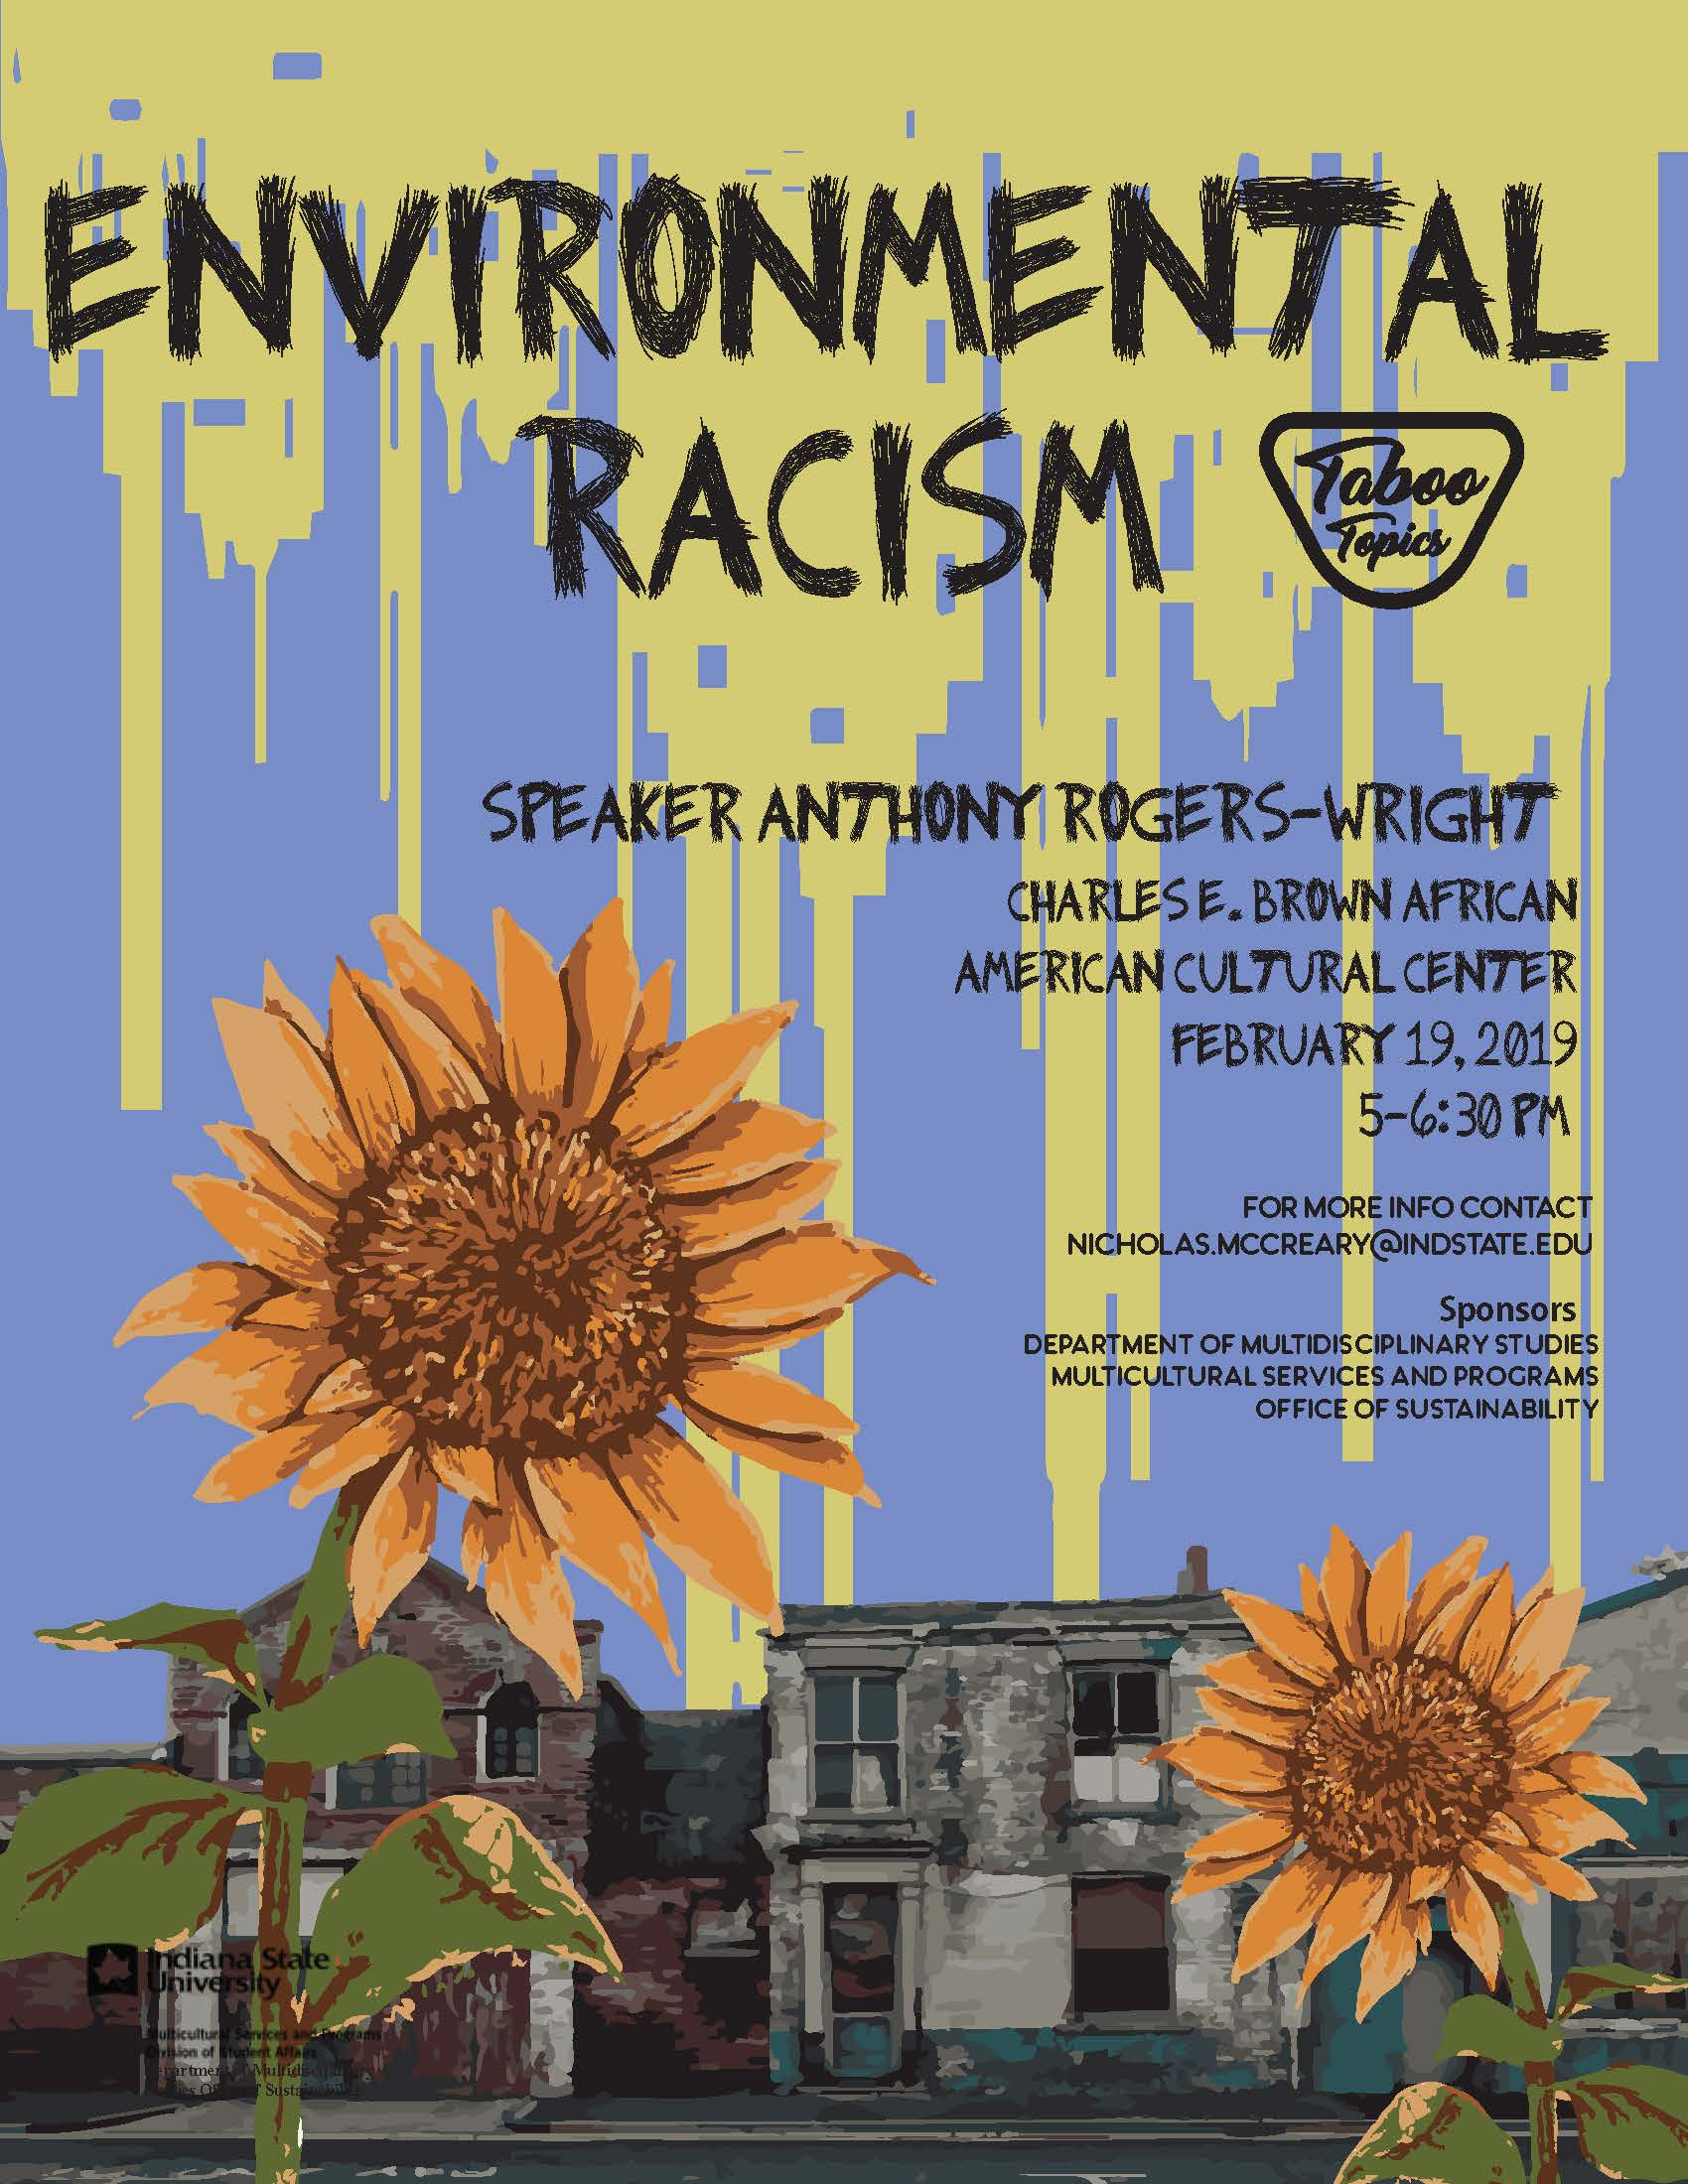 taboo-topic-environmental-racism-2019.jpg